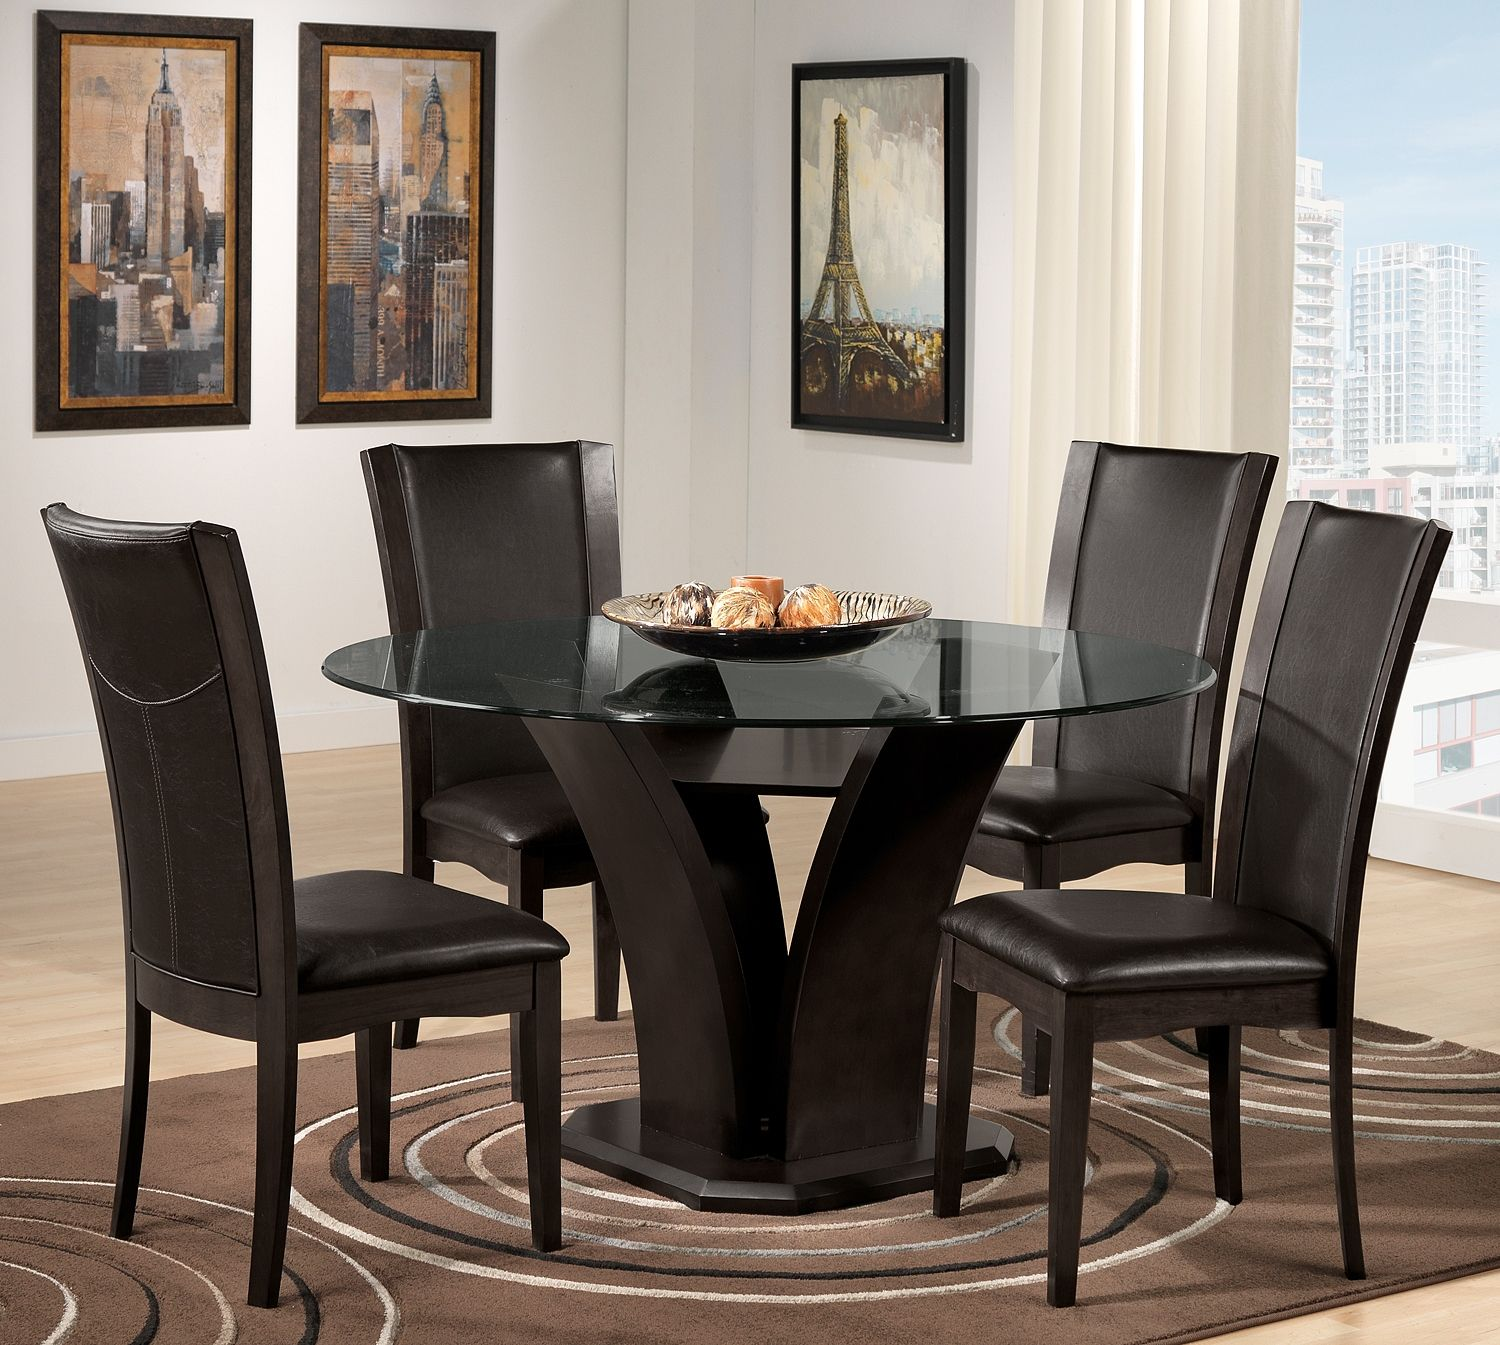 Leons Coffee Tables Canada Part - 48: Francesca II Casual Dining 5 Pc. Dinette - Leonu0027s 899.99 Like This Table  Better Than